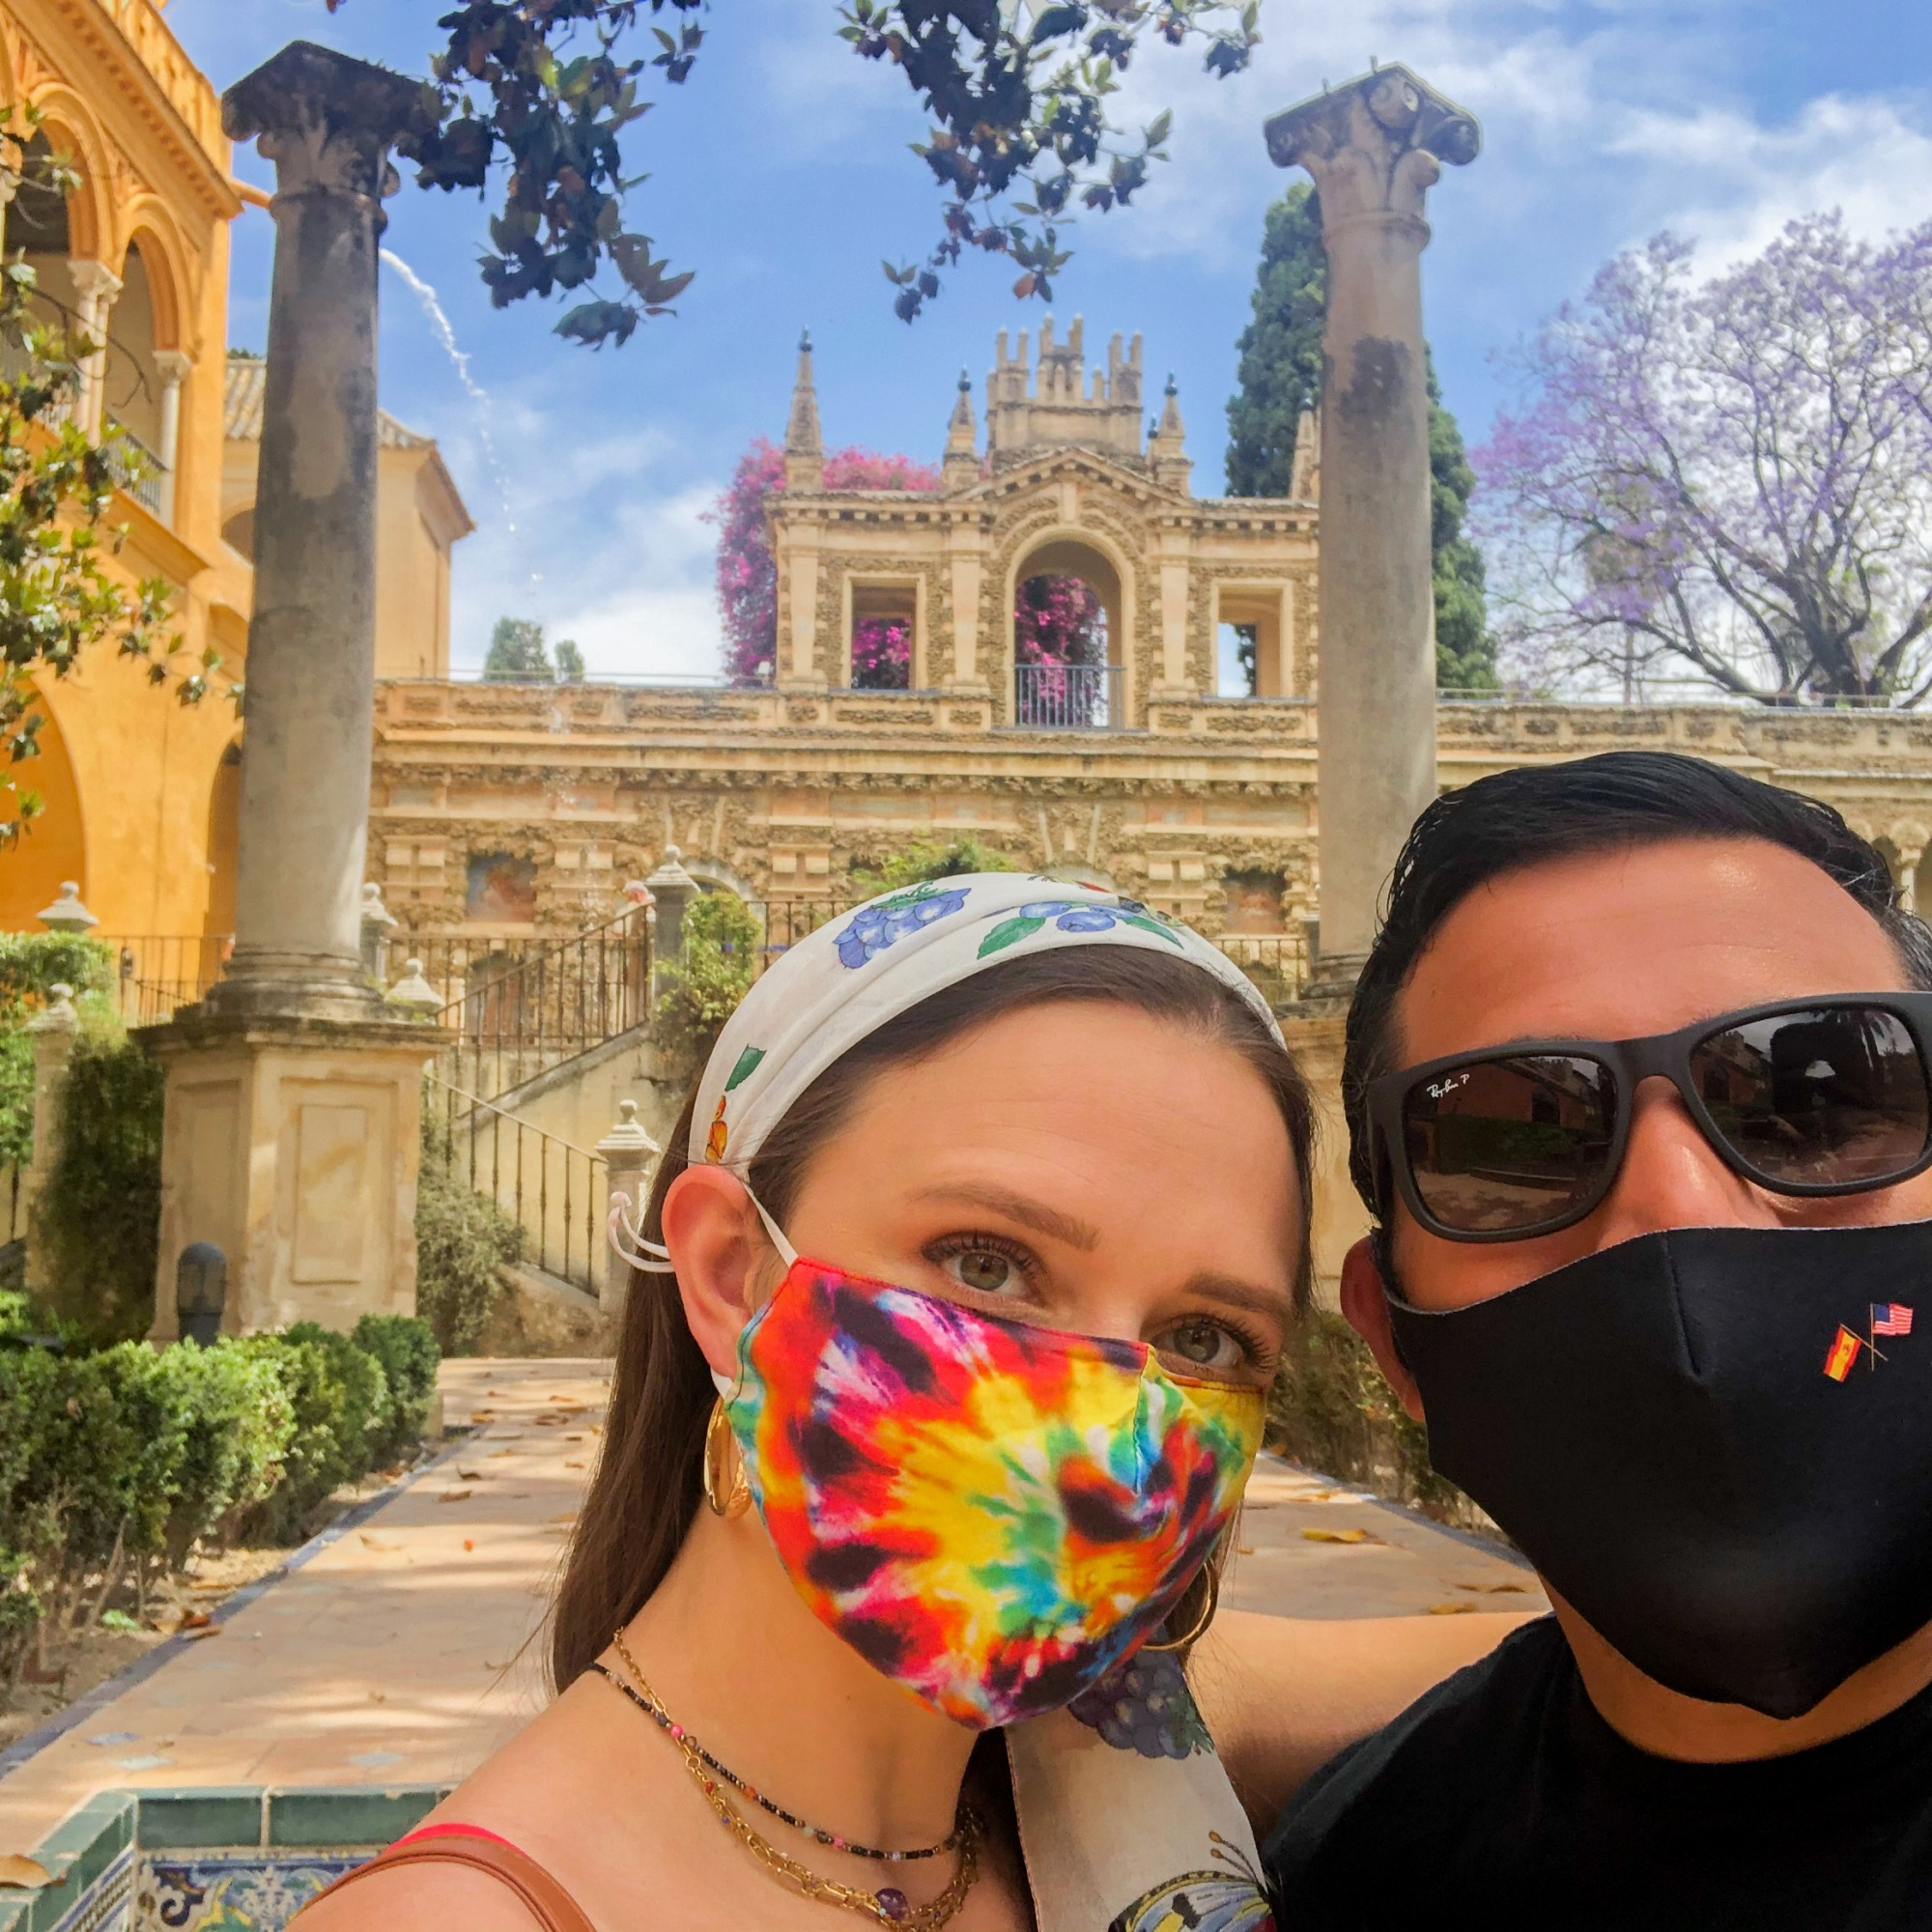 A couple taking a selfie in the gardens of the Alcazar